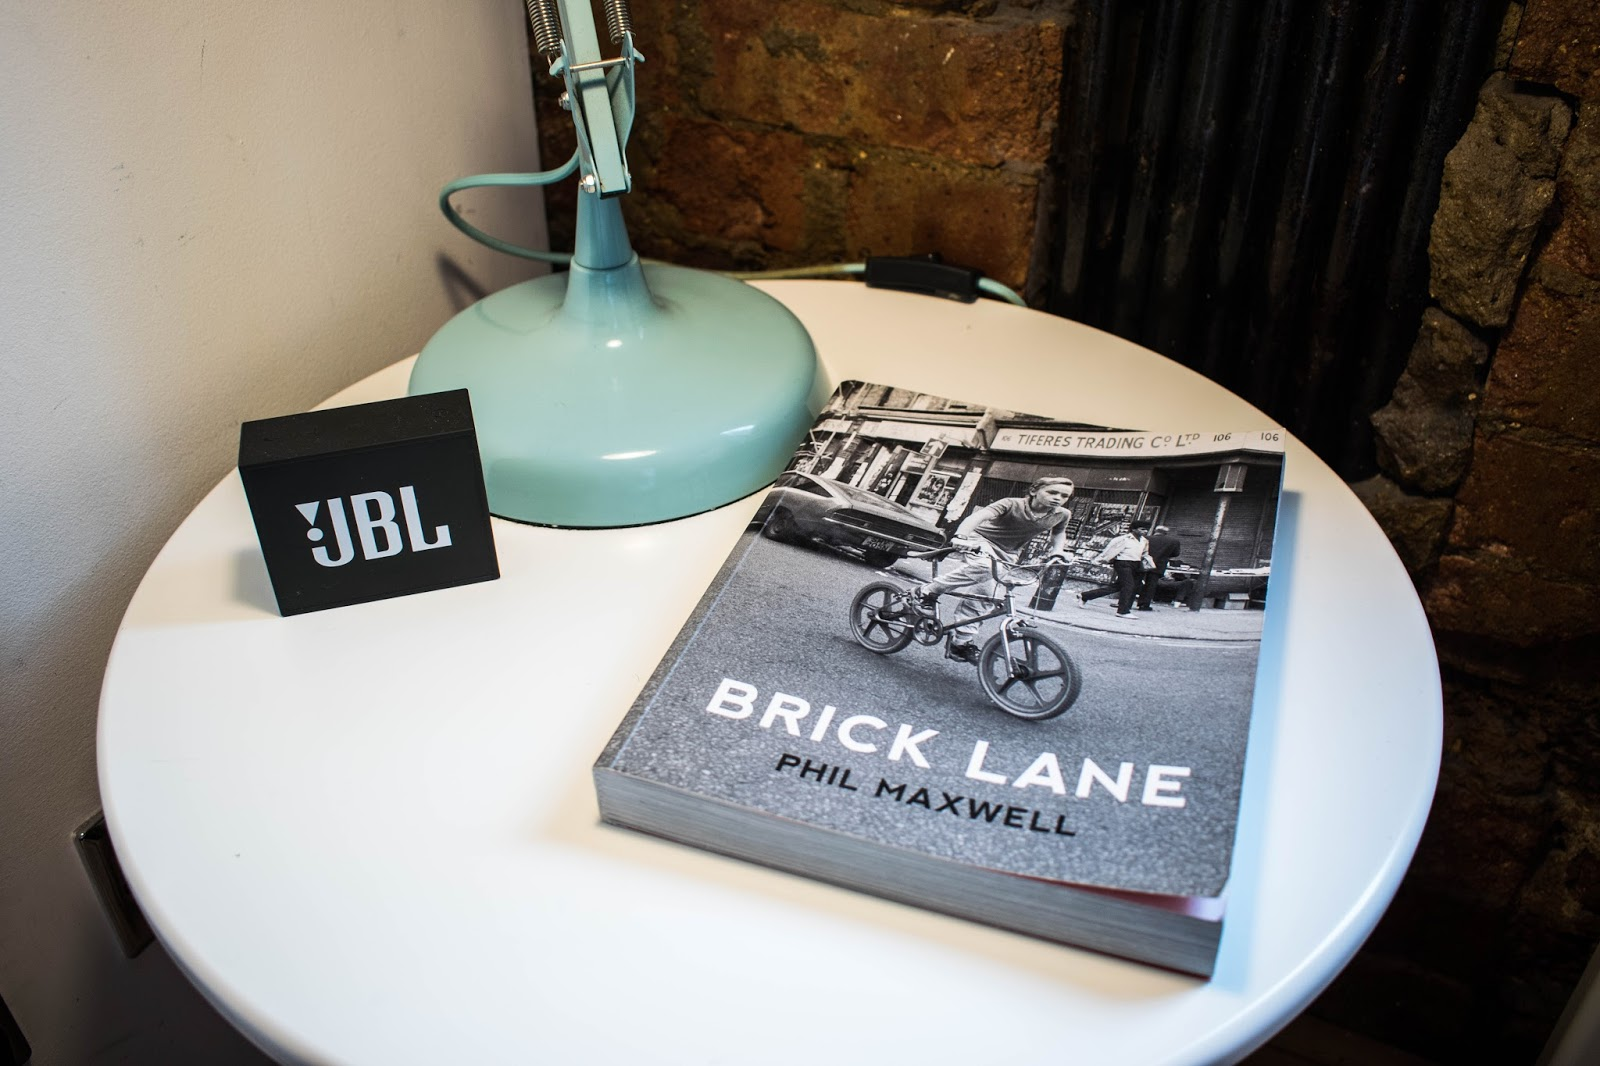 Brick Lane by Phil Maxwell photography book